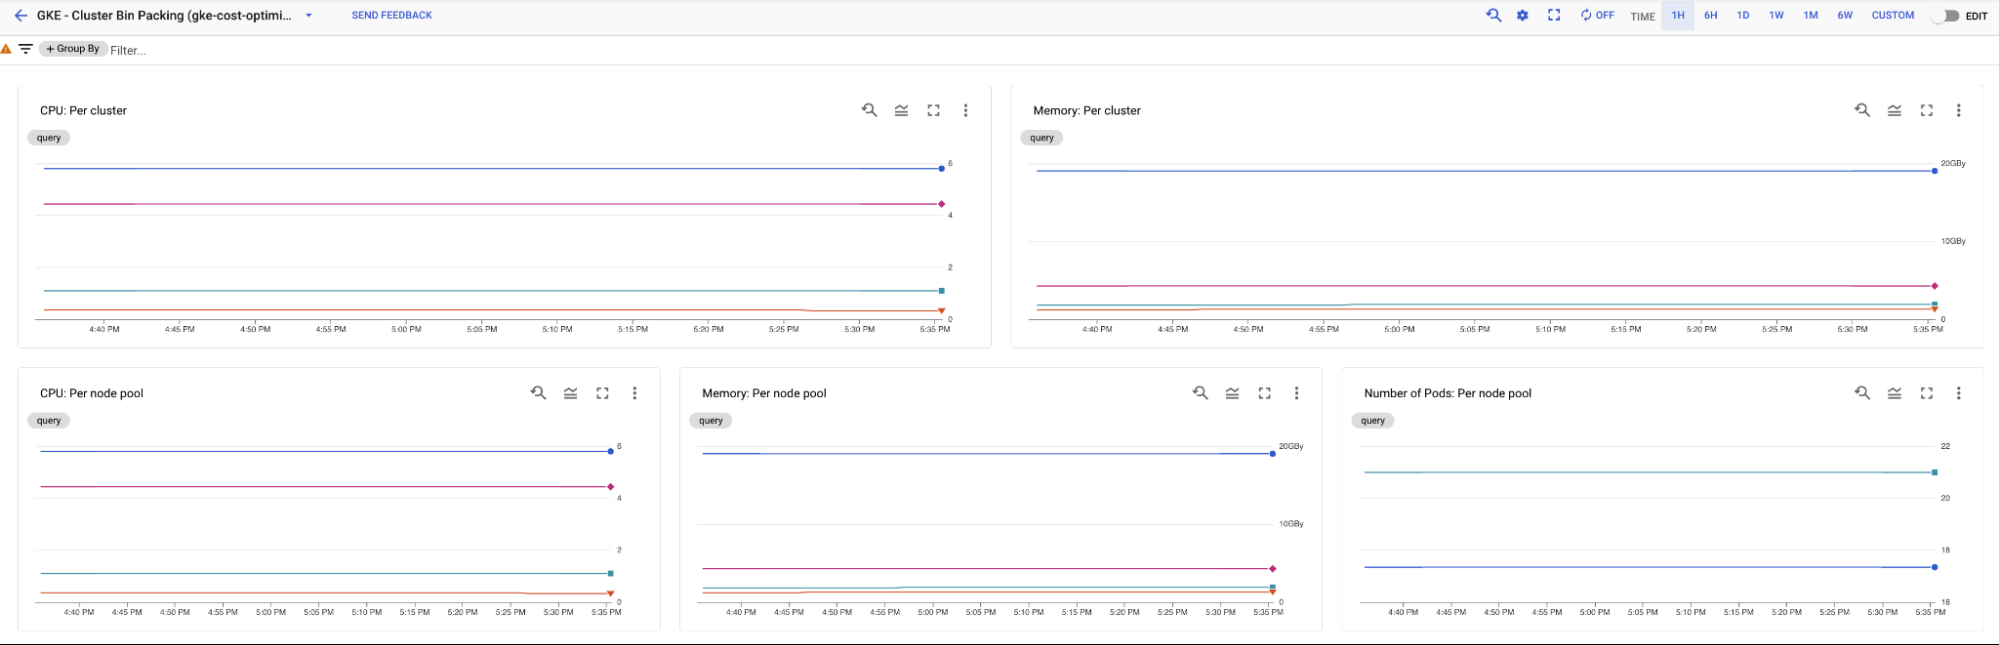 Bin Packing dashboard presents information aggregated by cluster (first row) and node pools (second row).